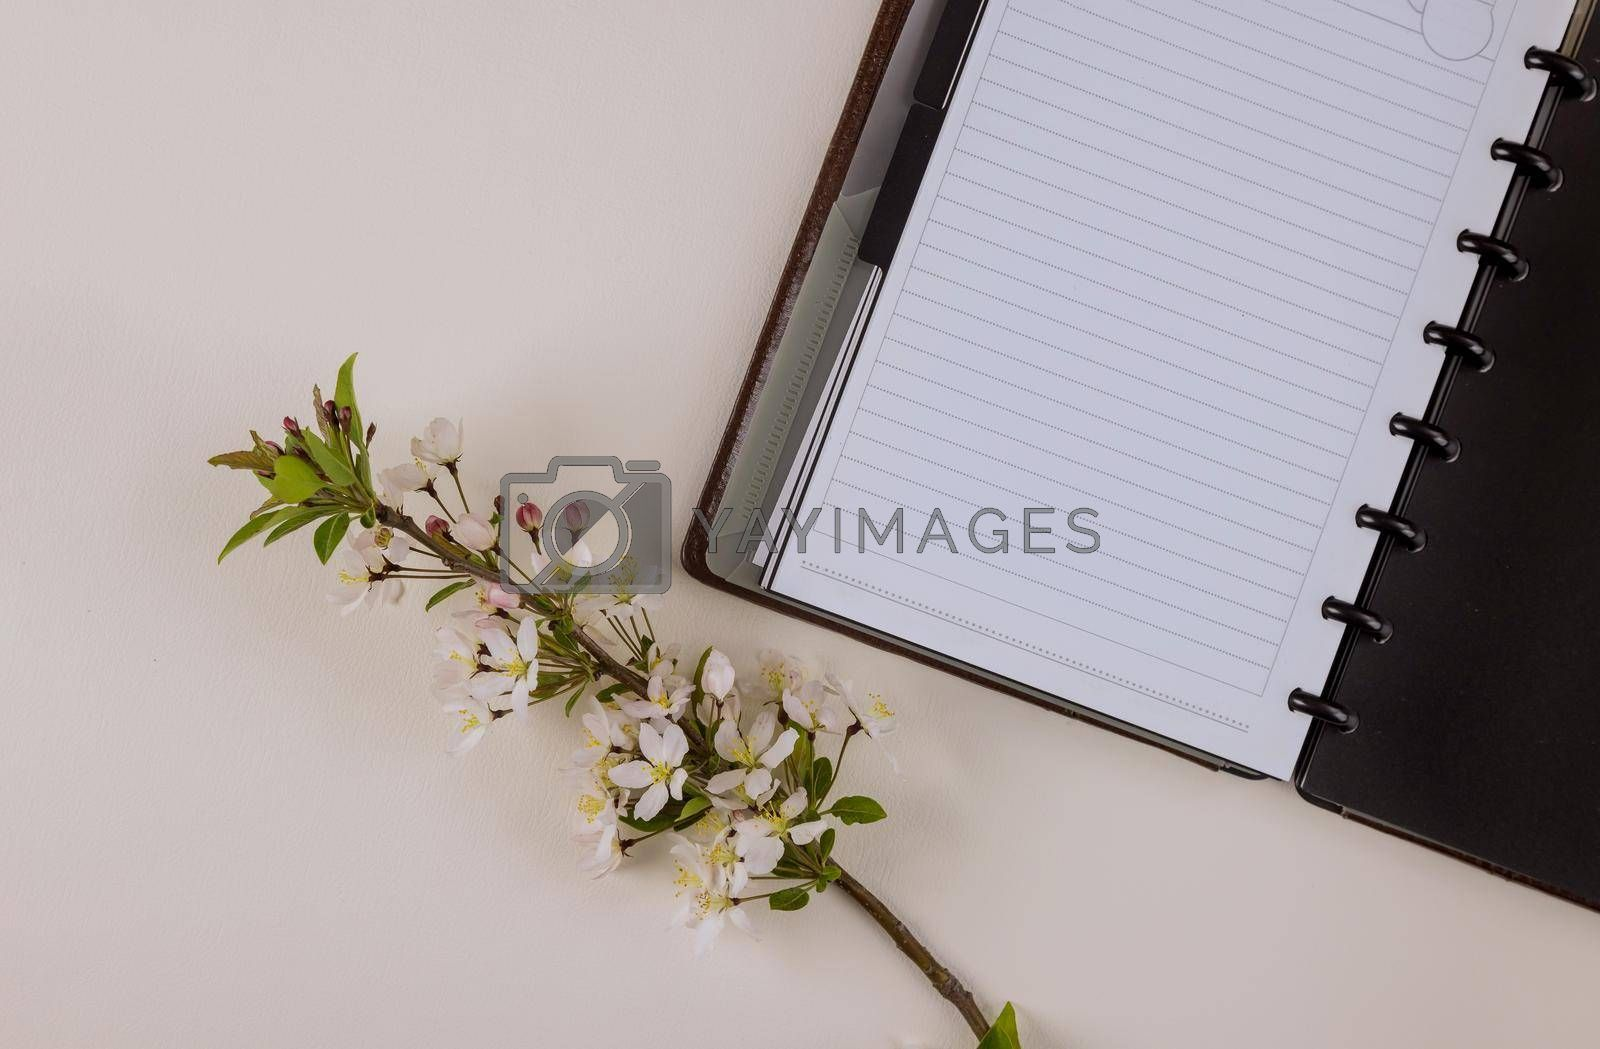 Office equipment space with notepad on using for business his work